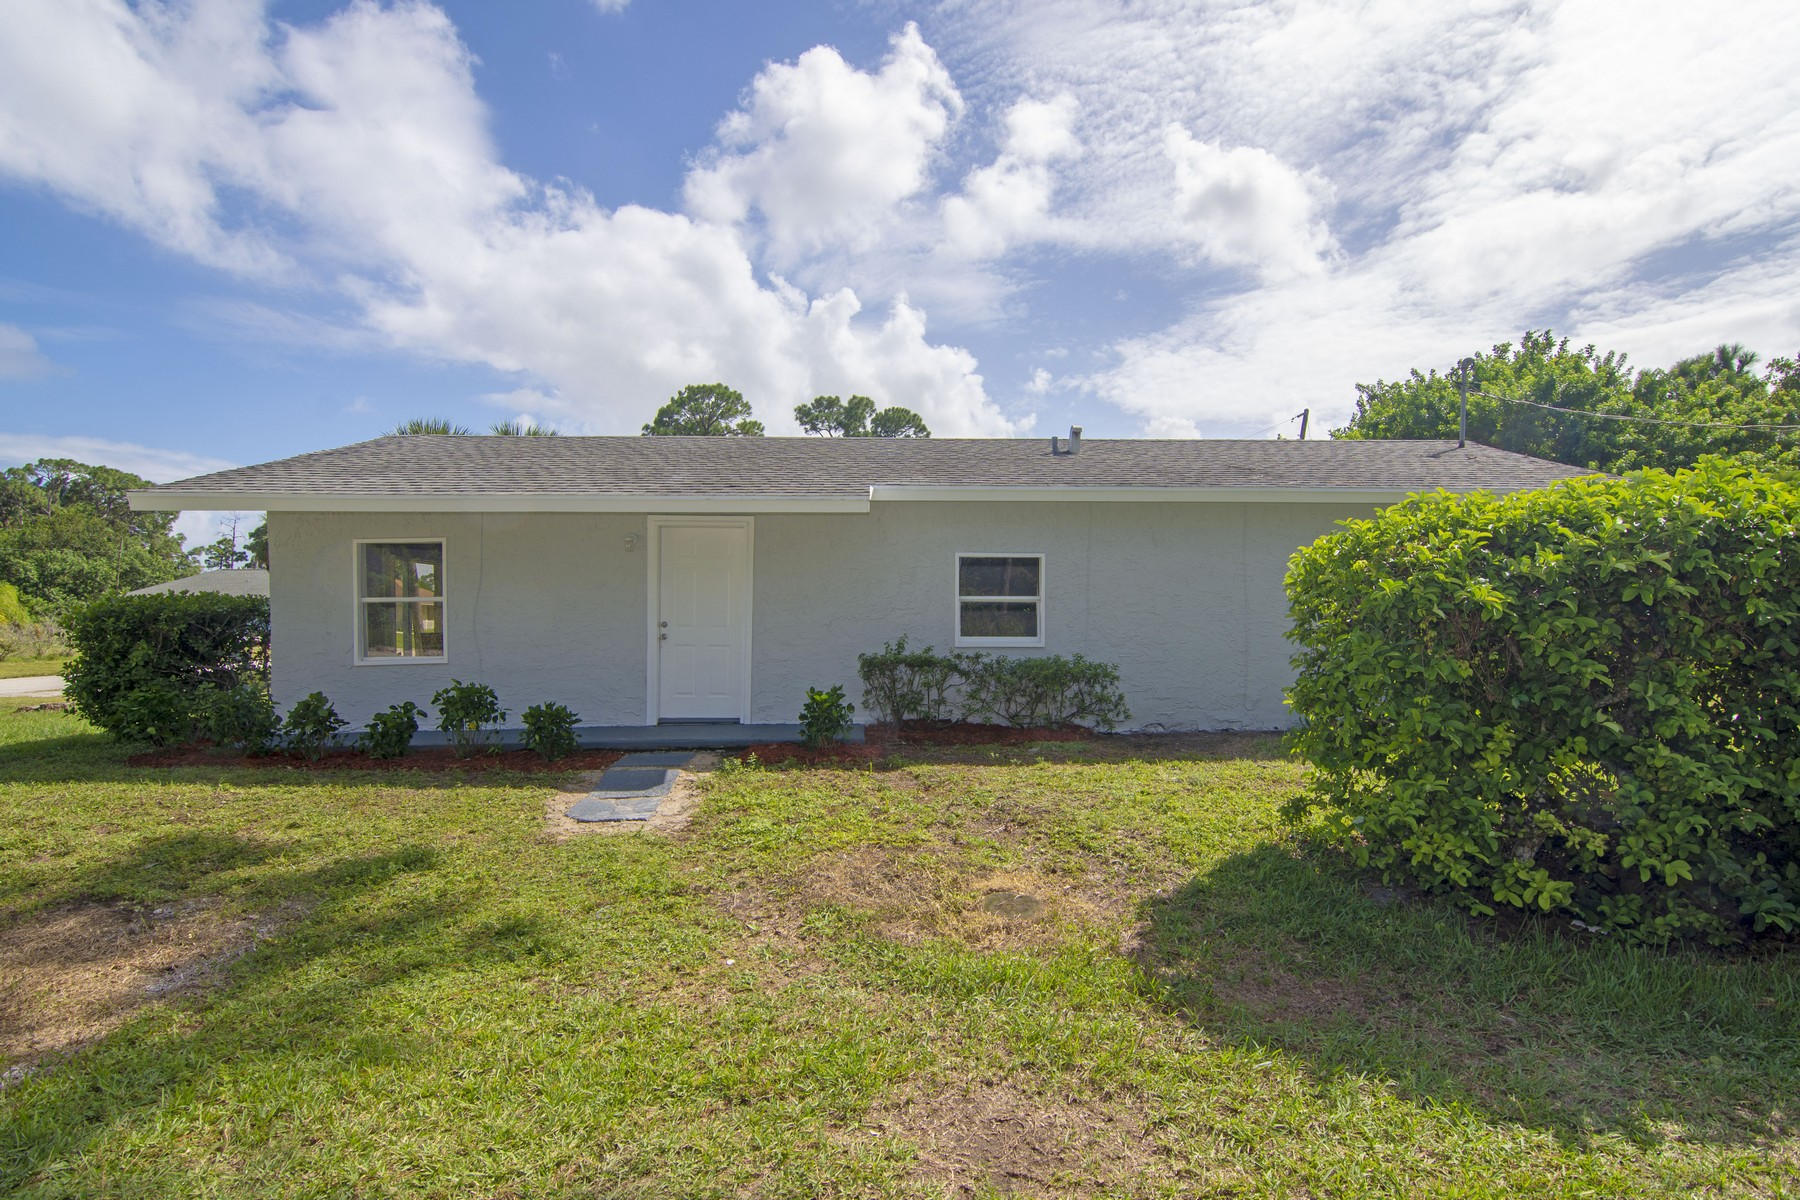 Property のために 売買 アット Completely Remodeled Home! 1145 7th St SW Vero Beach, フロリダ 32962 アメリカ